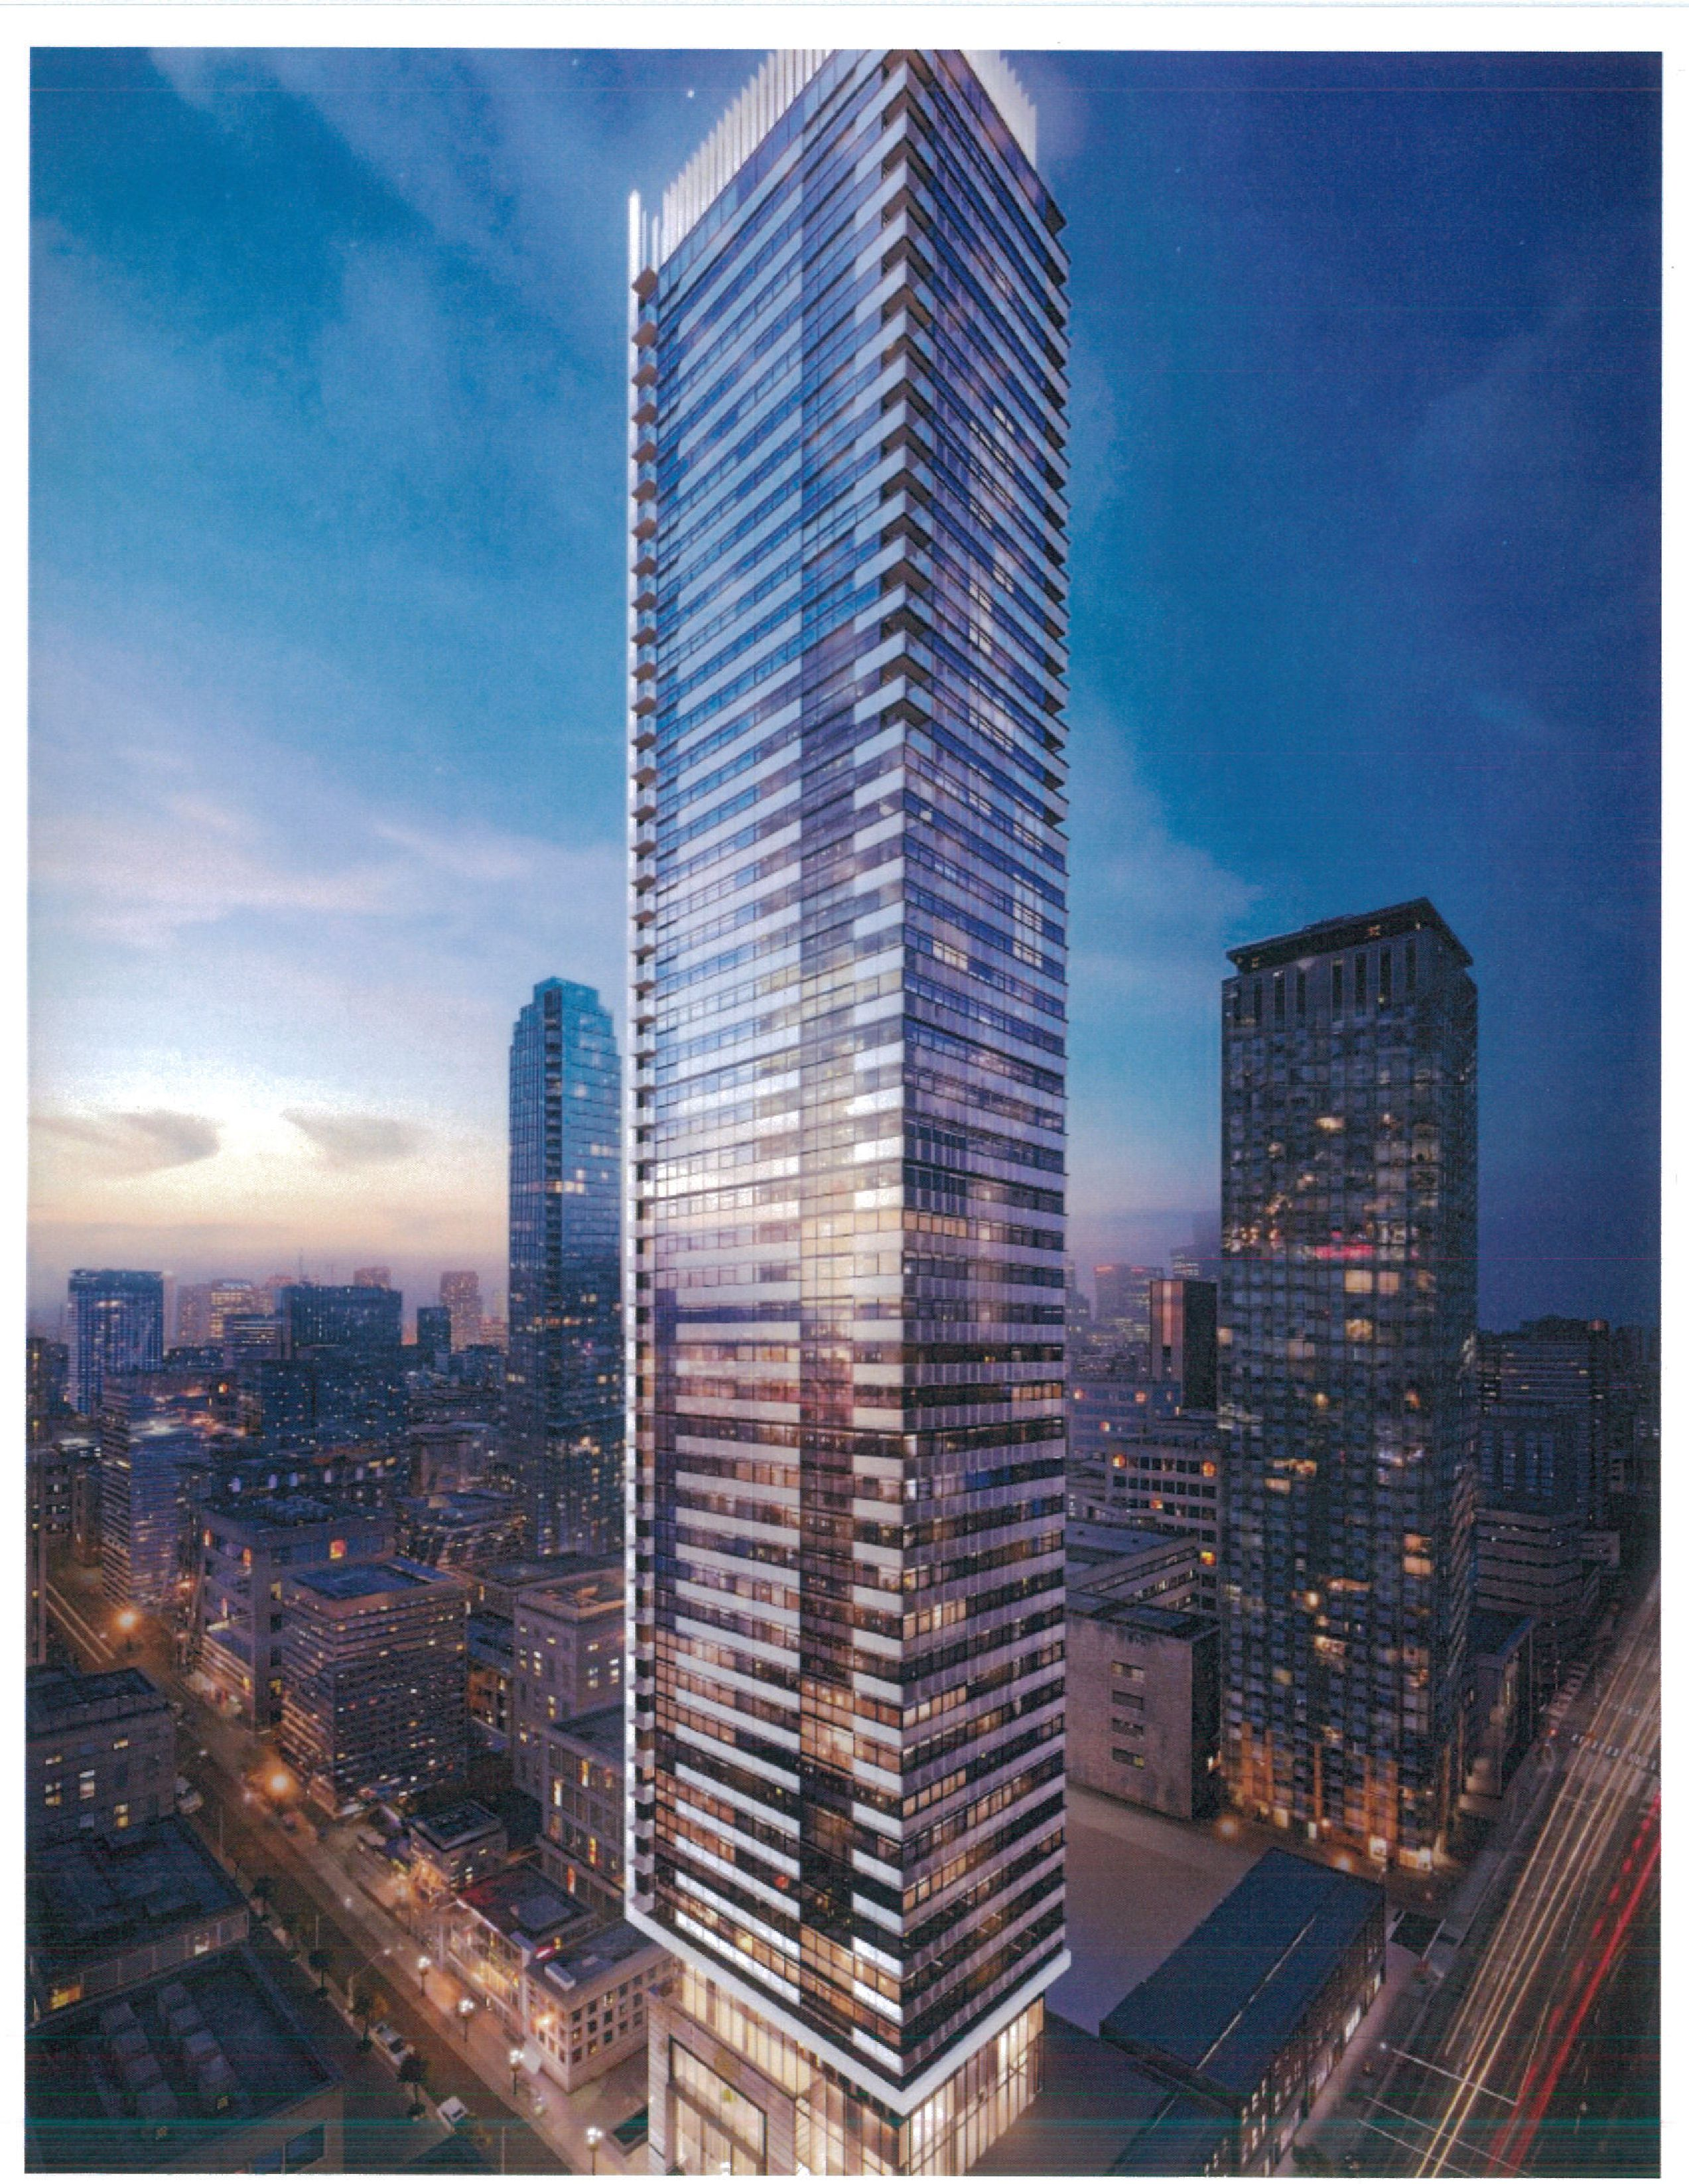 8 cumberland,yorkville,Condos,preconstruction,registration,condo,vip,platinum,register,storey, tower,toronto,real,estate,new,development,amenity,condoandloft,condoandloft.ca